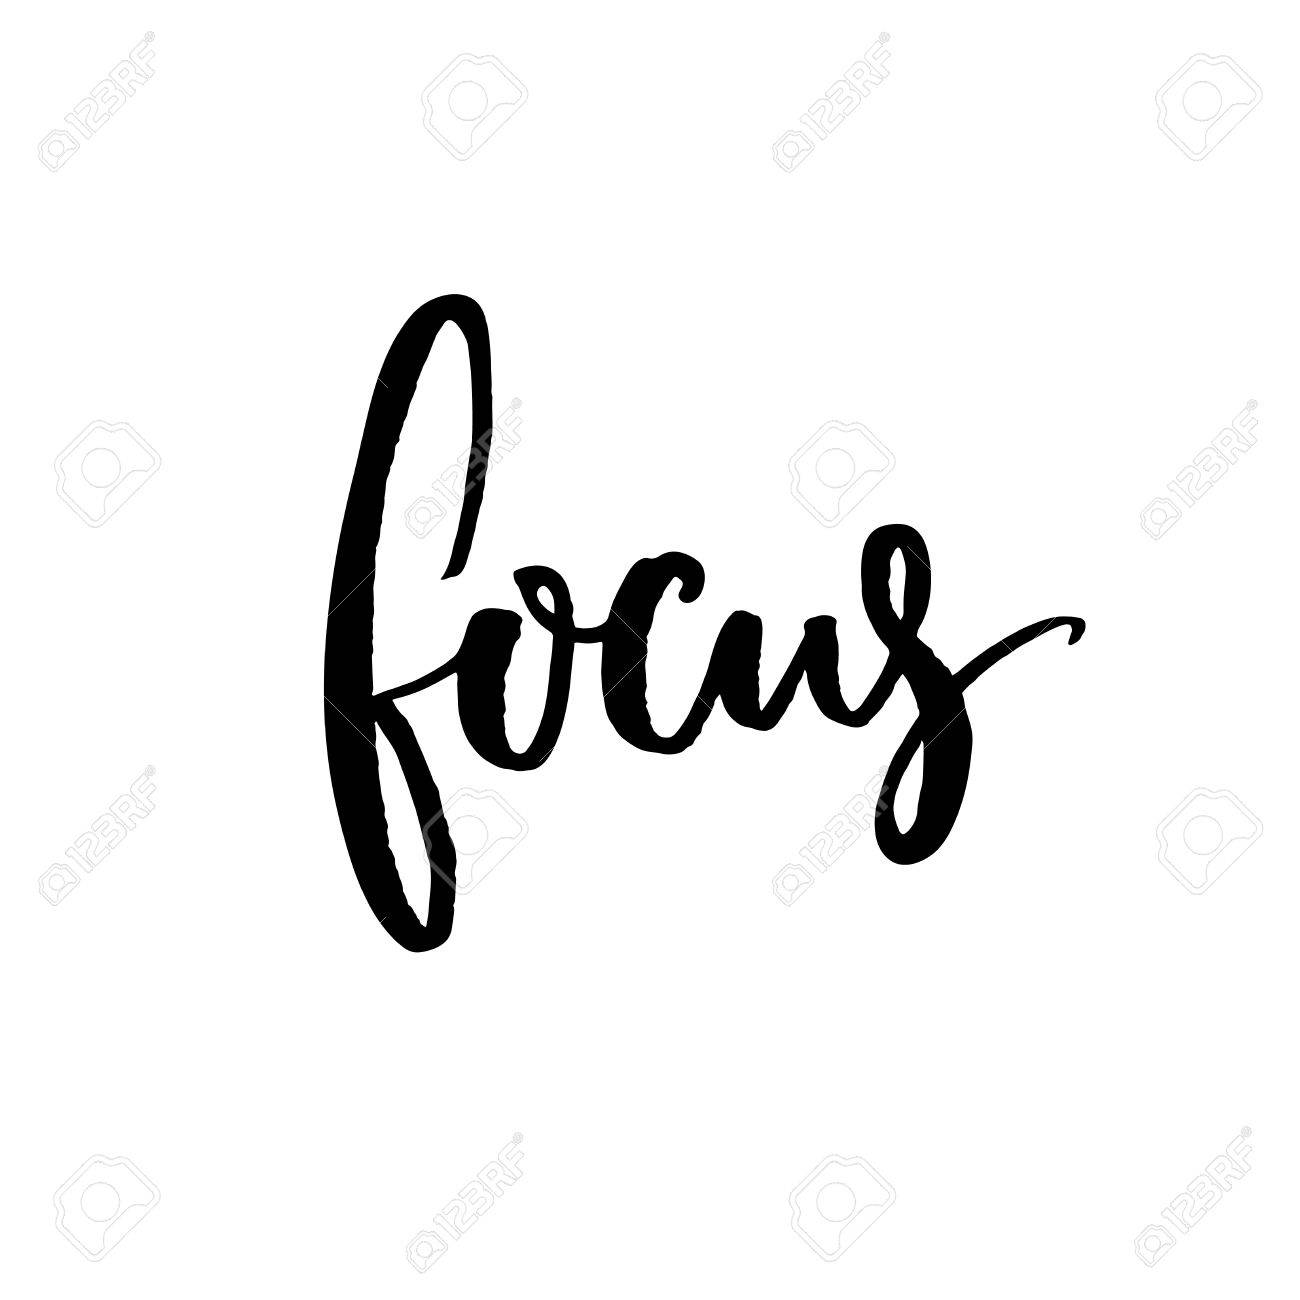 Focus  Minimalistic design about concentration and work  Vector